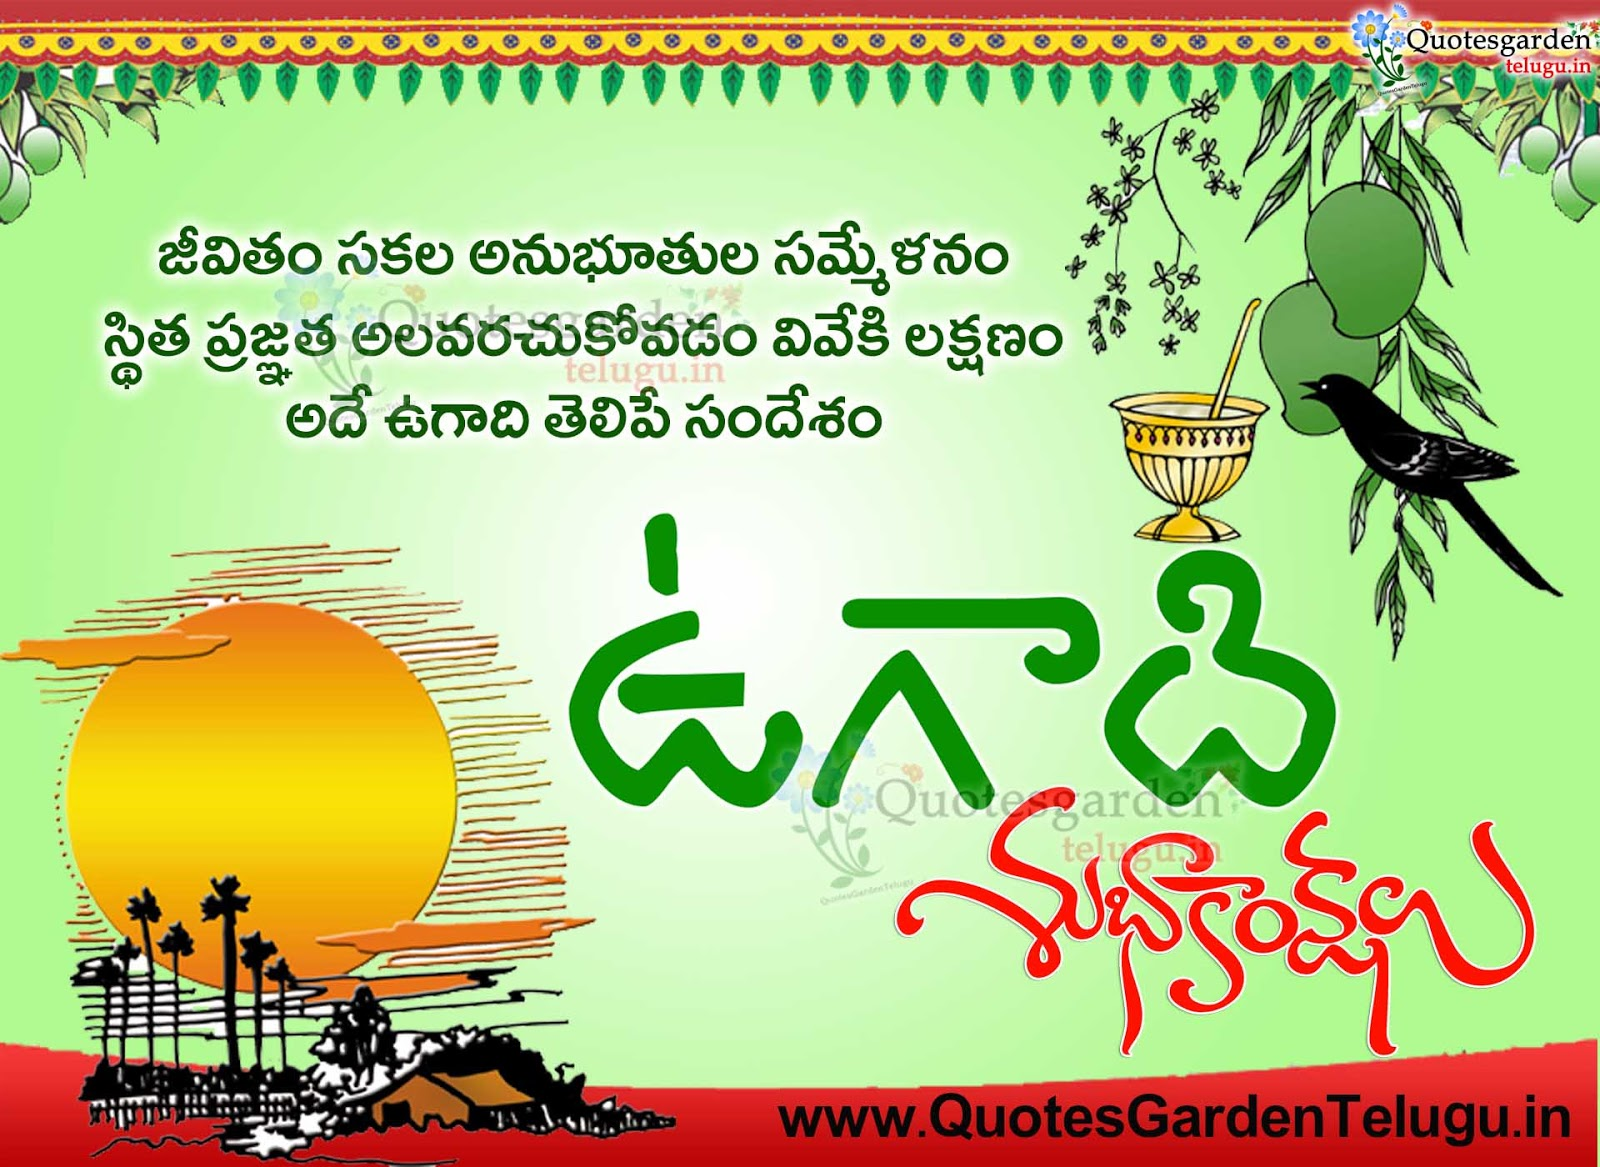 2017 telugu ugadi quotes and wishes quotes garden telugu telugu 2017 telugu ugadi quotes and wishes m4hsunfo